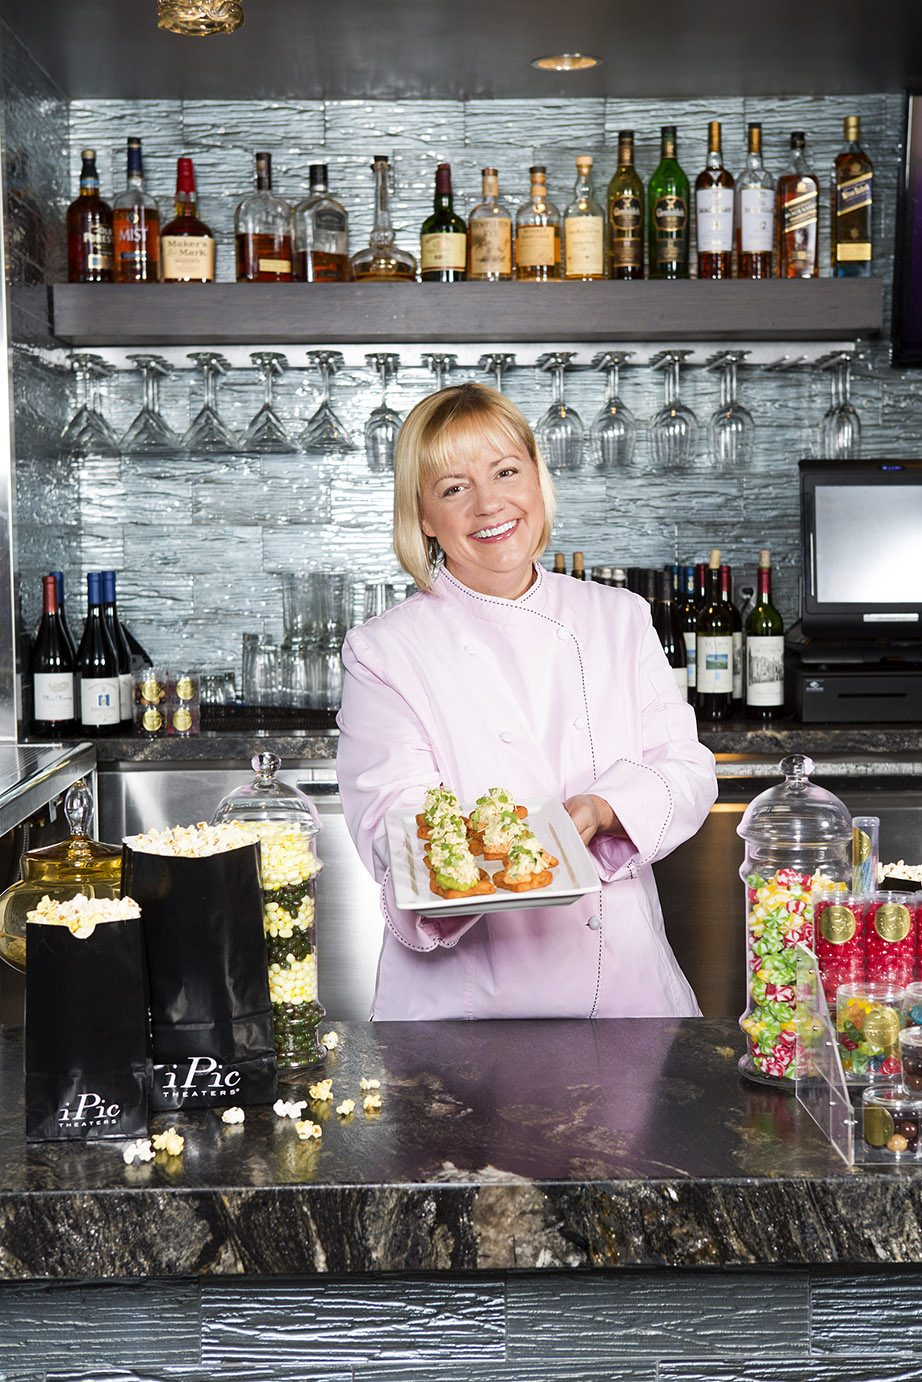 iPic Theaters_Chef Sherry Yard_Chief Operating Officer, Restaurant Division